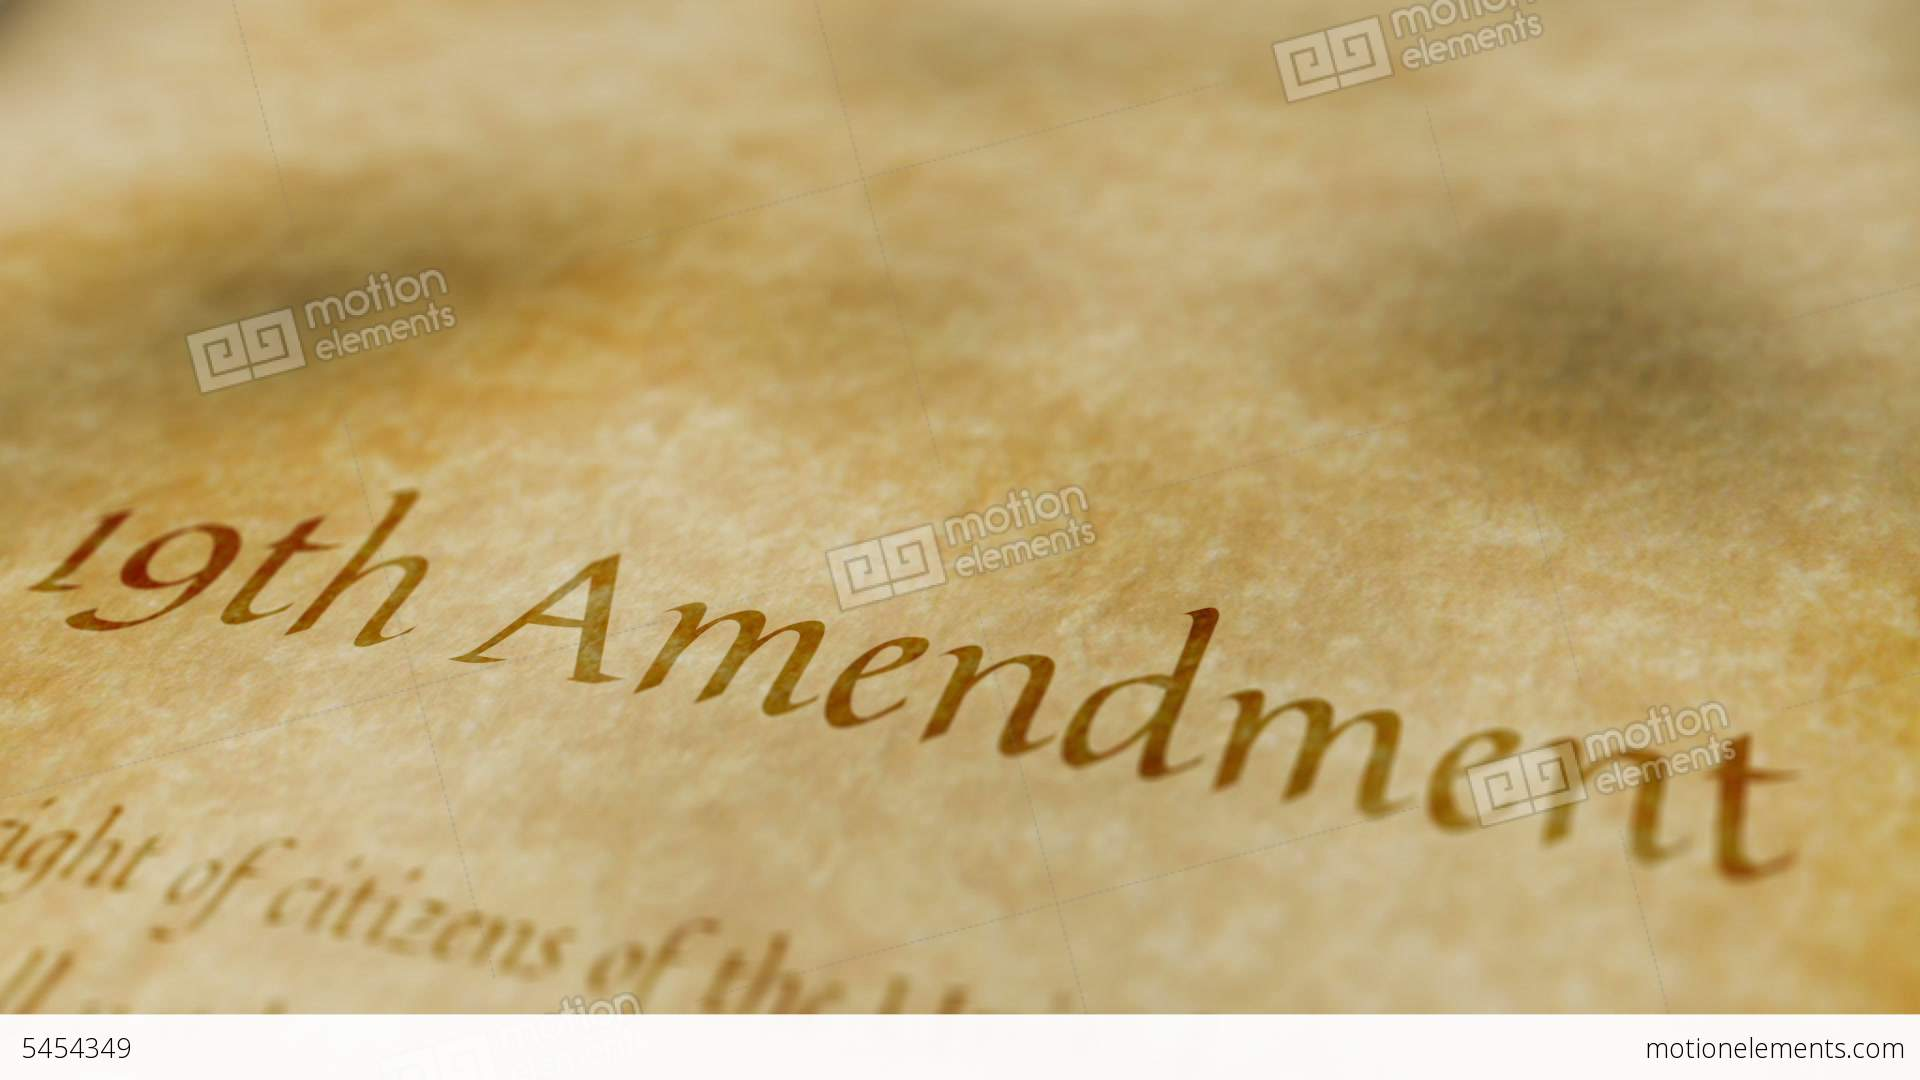 Nineteenth Amendment to the United States Constitution